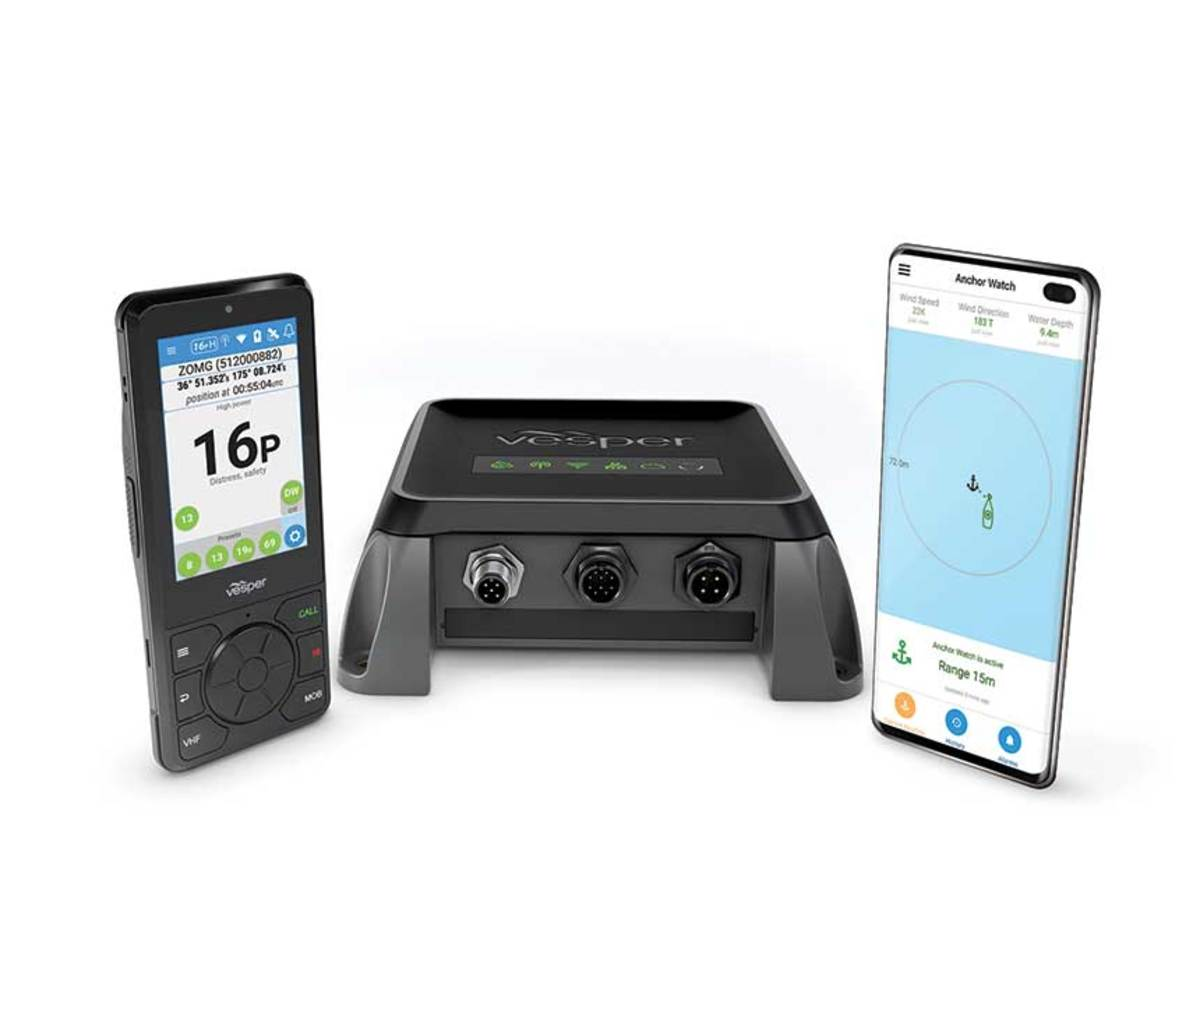 The Vesper Cortex system consists of a base unit, handset and a mobile app.